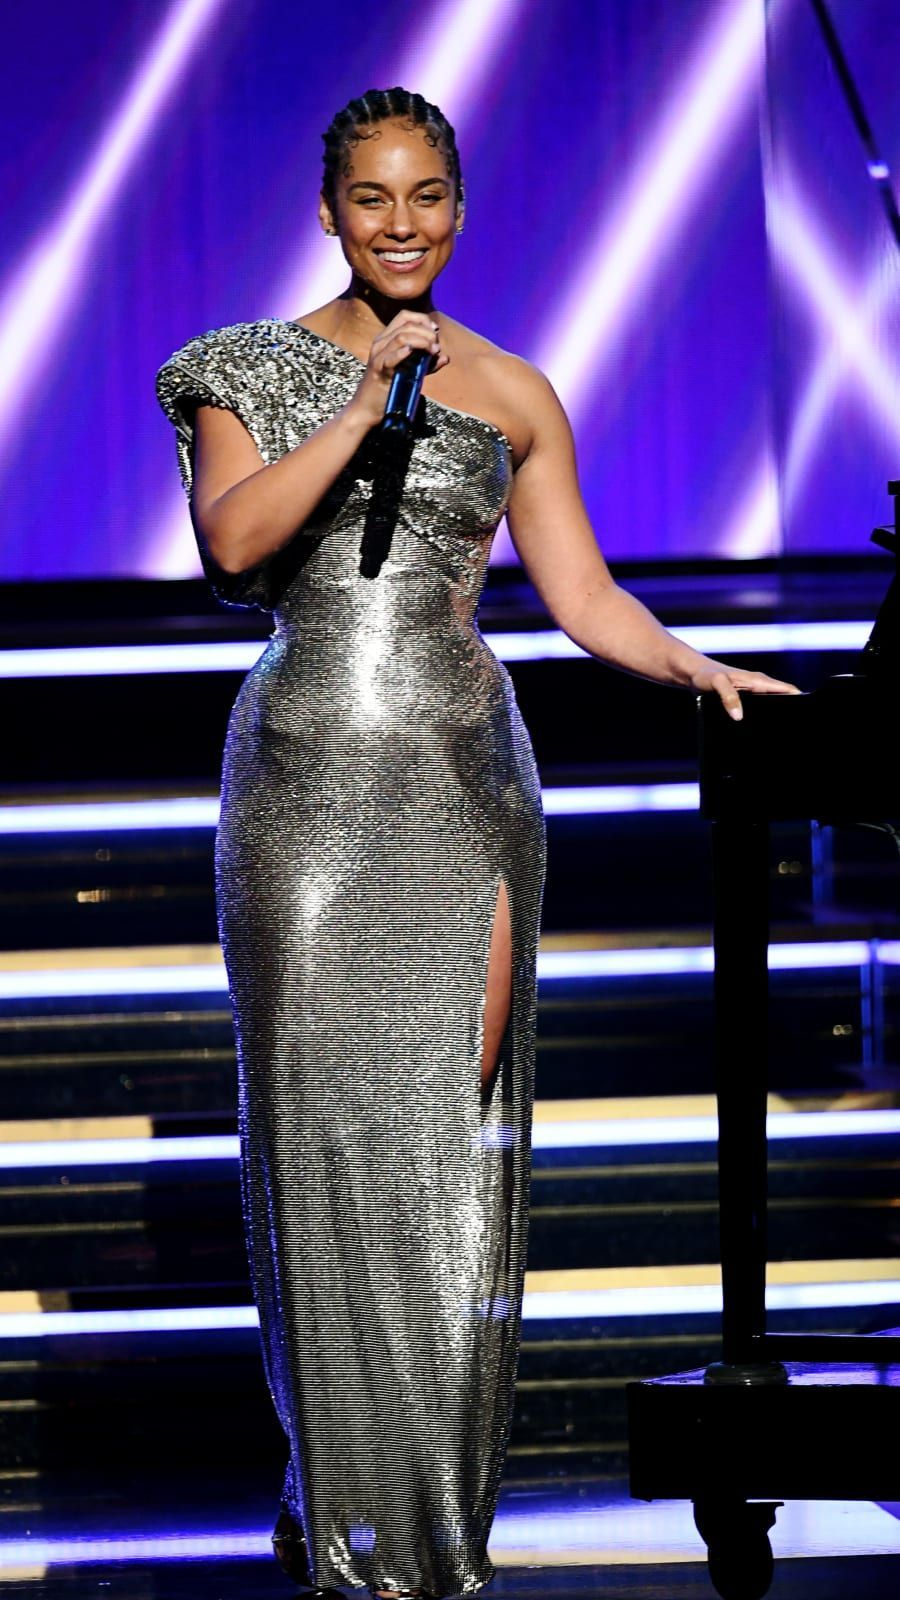 Alicia Keys During The 62nd Annual Grammy Awards On January 26